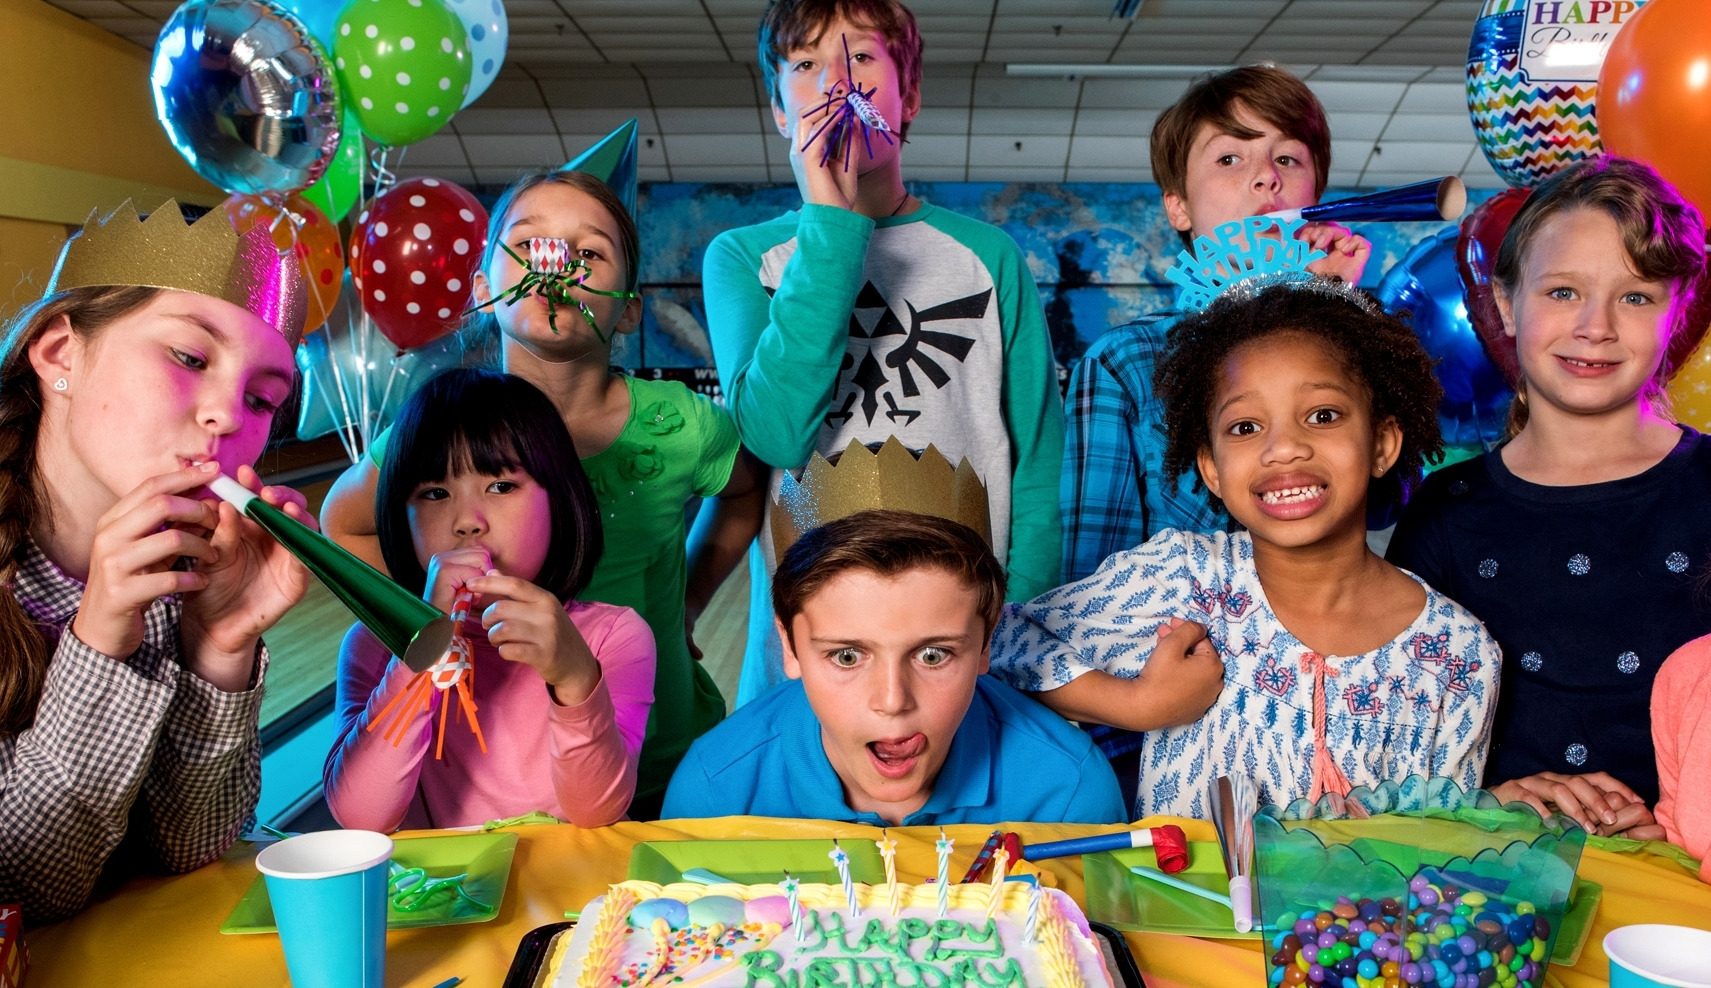 Birthday Parties - If you're looking to throw a party to remember, give your guests something they will never forget!